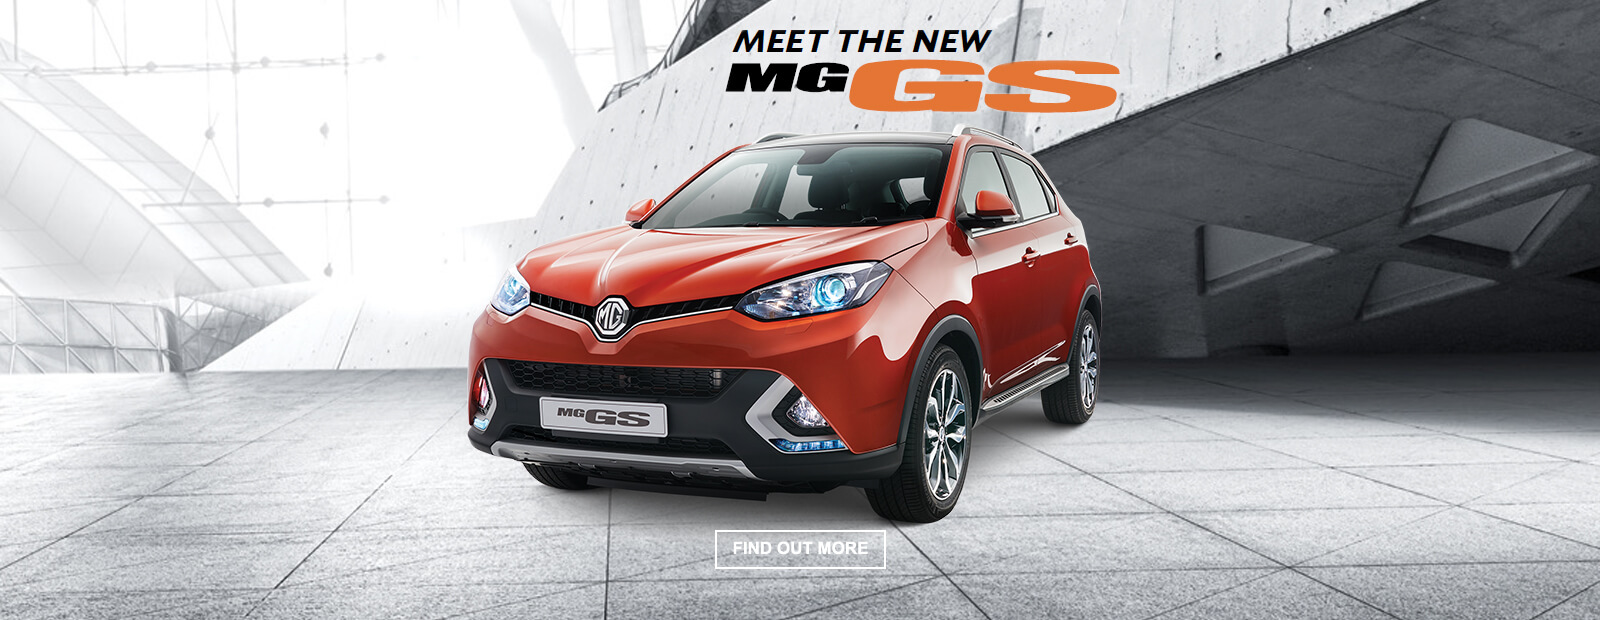 Discover the new MG GS SUV, the latest model available from ELN MG.